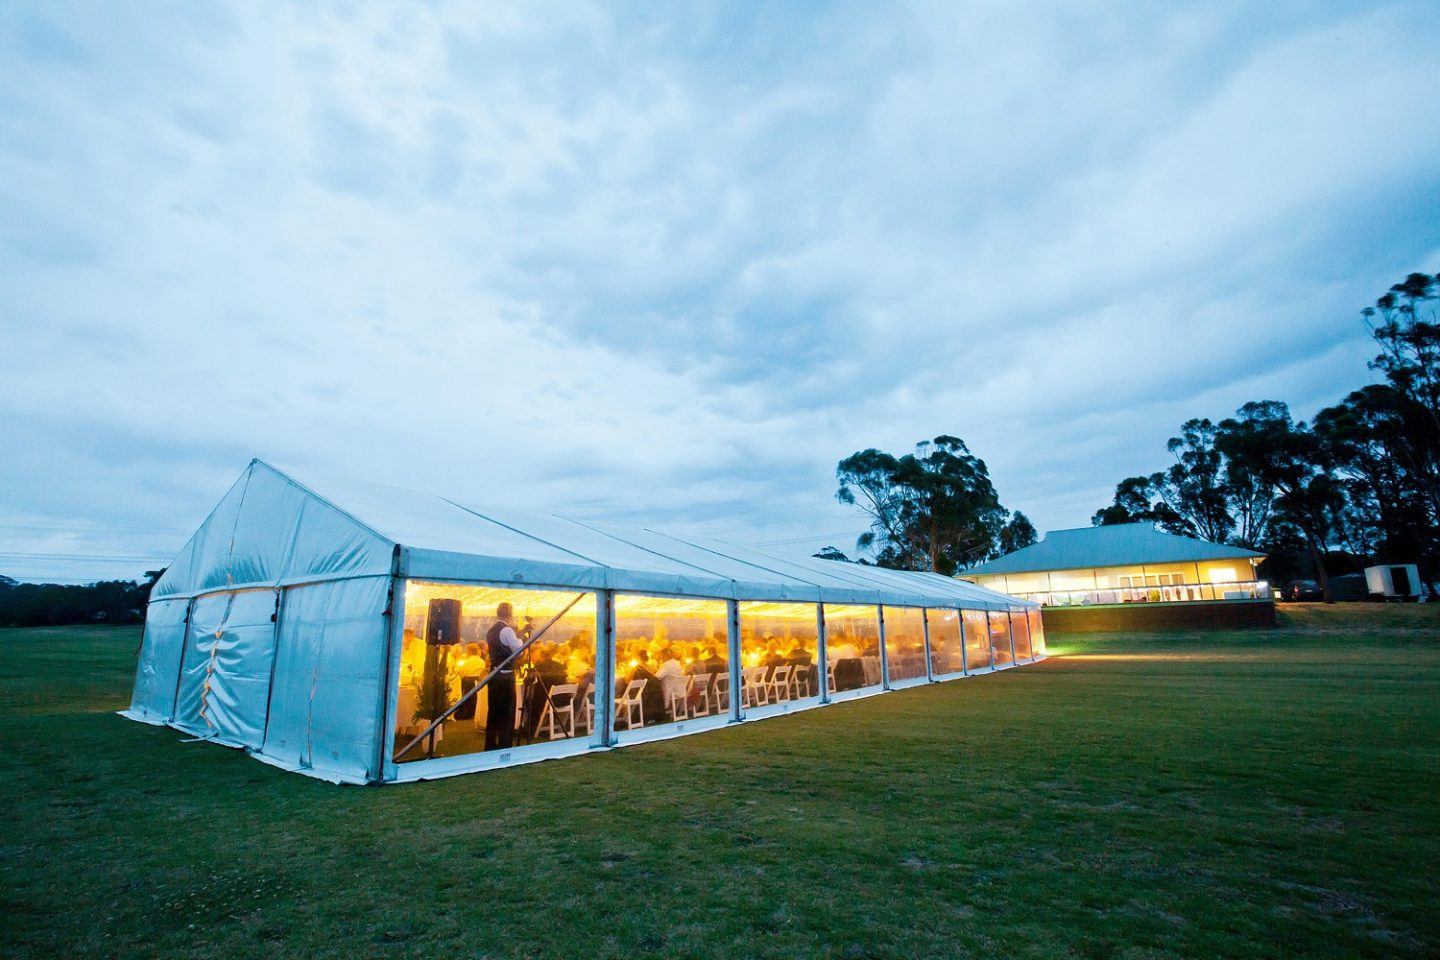 ten-by-thirty-meter-solid-white-vinyl-roof-pavilion-with-clear-walls